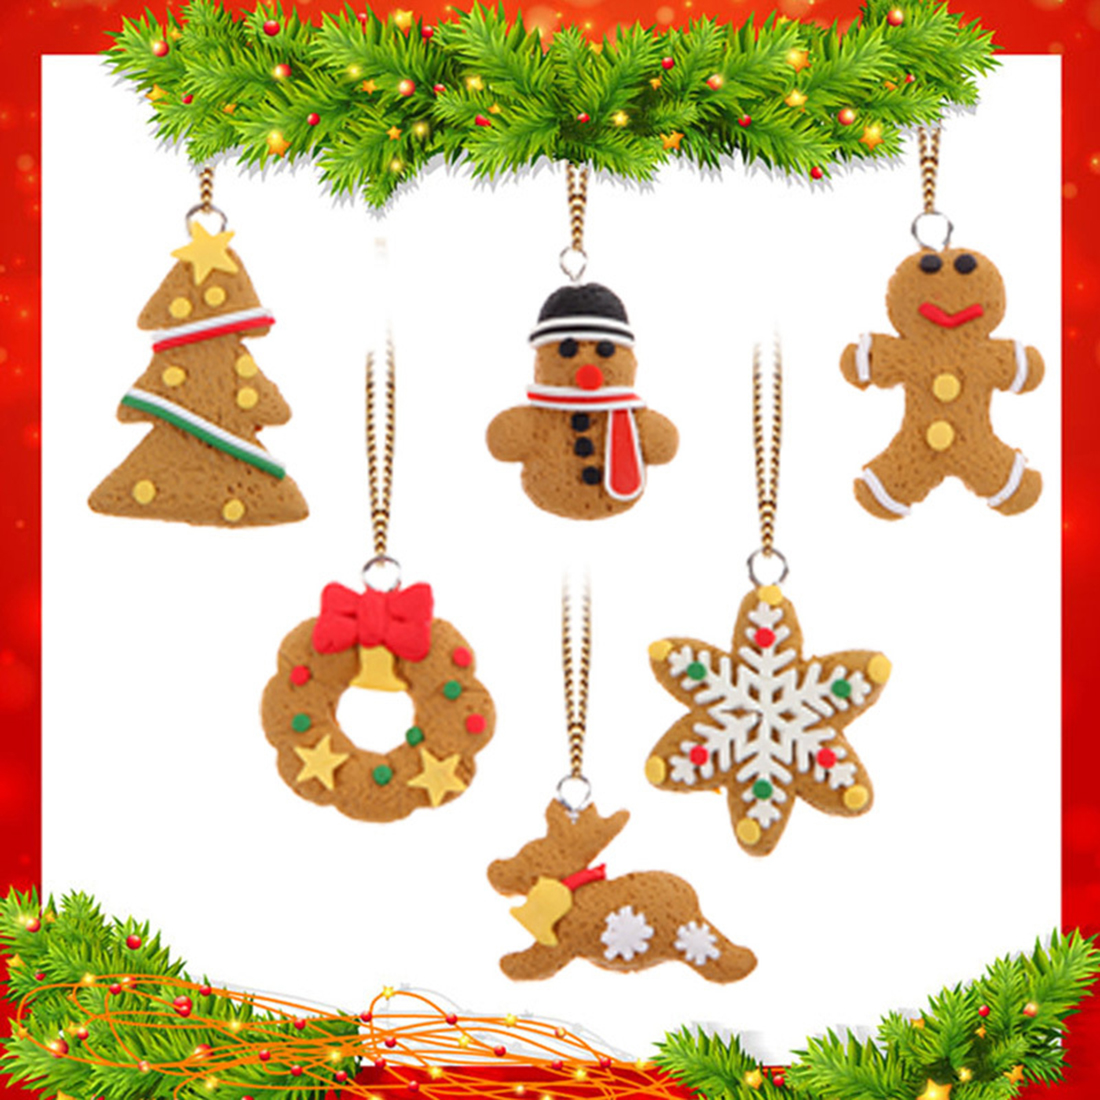 christmas decorations accessories decoration image idea - Christmas Tree Accessories